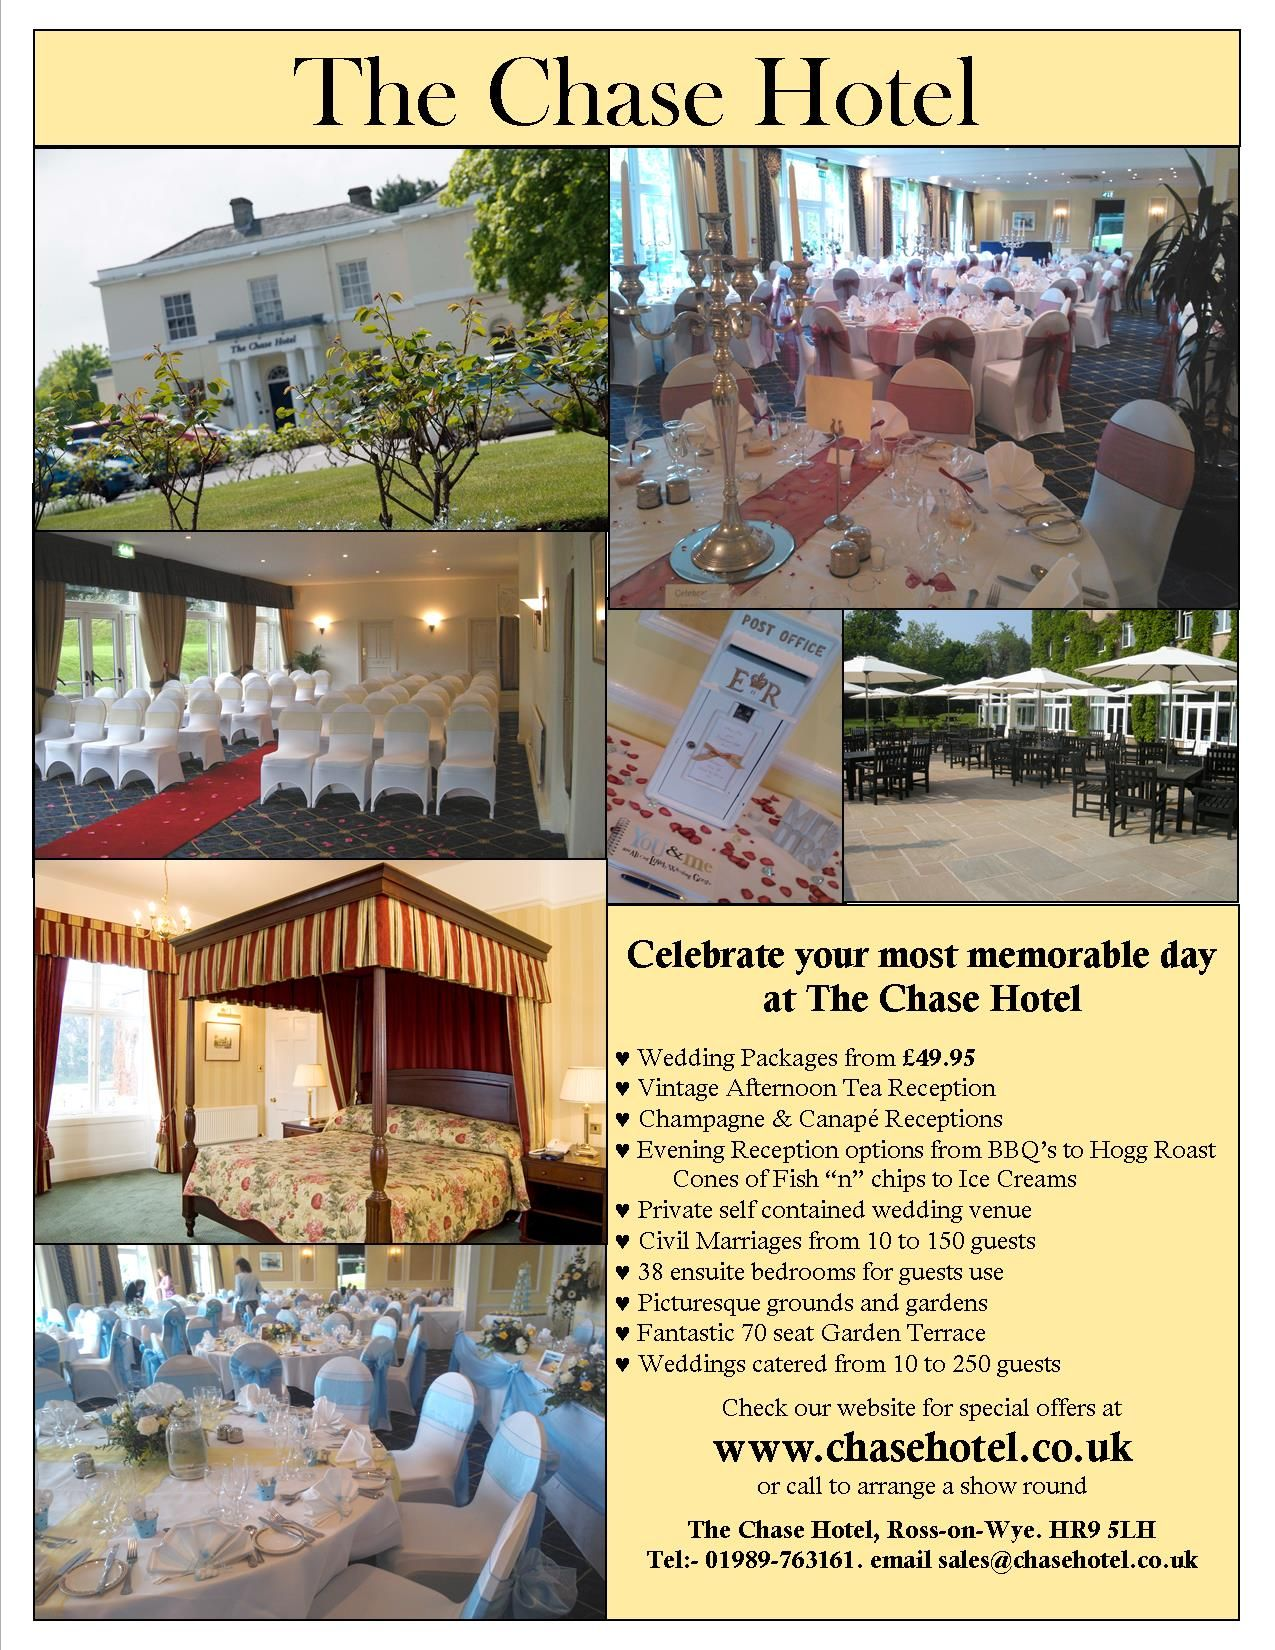 Planning Your Wedding Reception Packages Start From 4995 At The